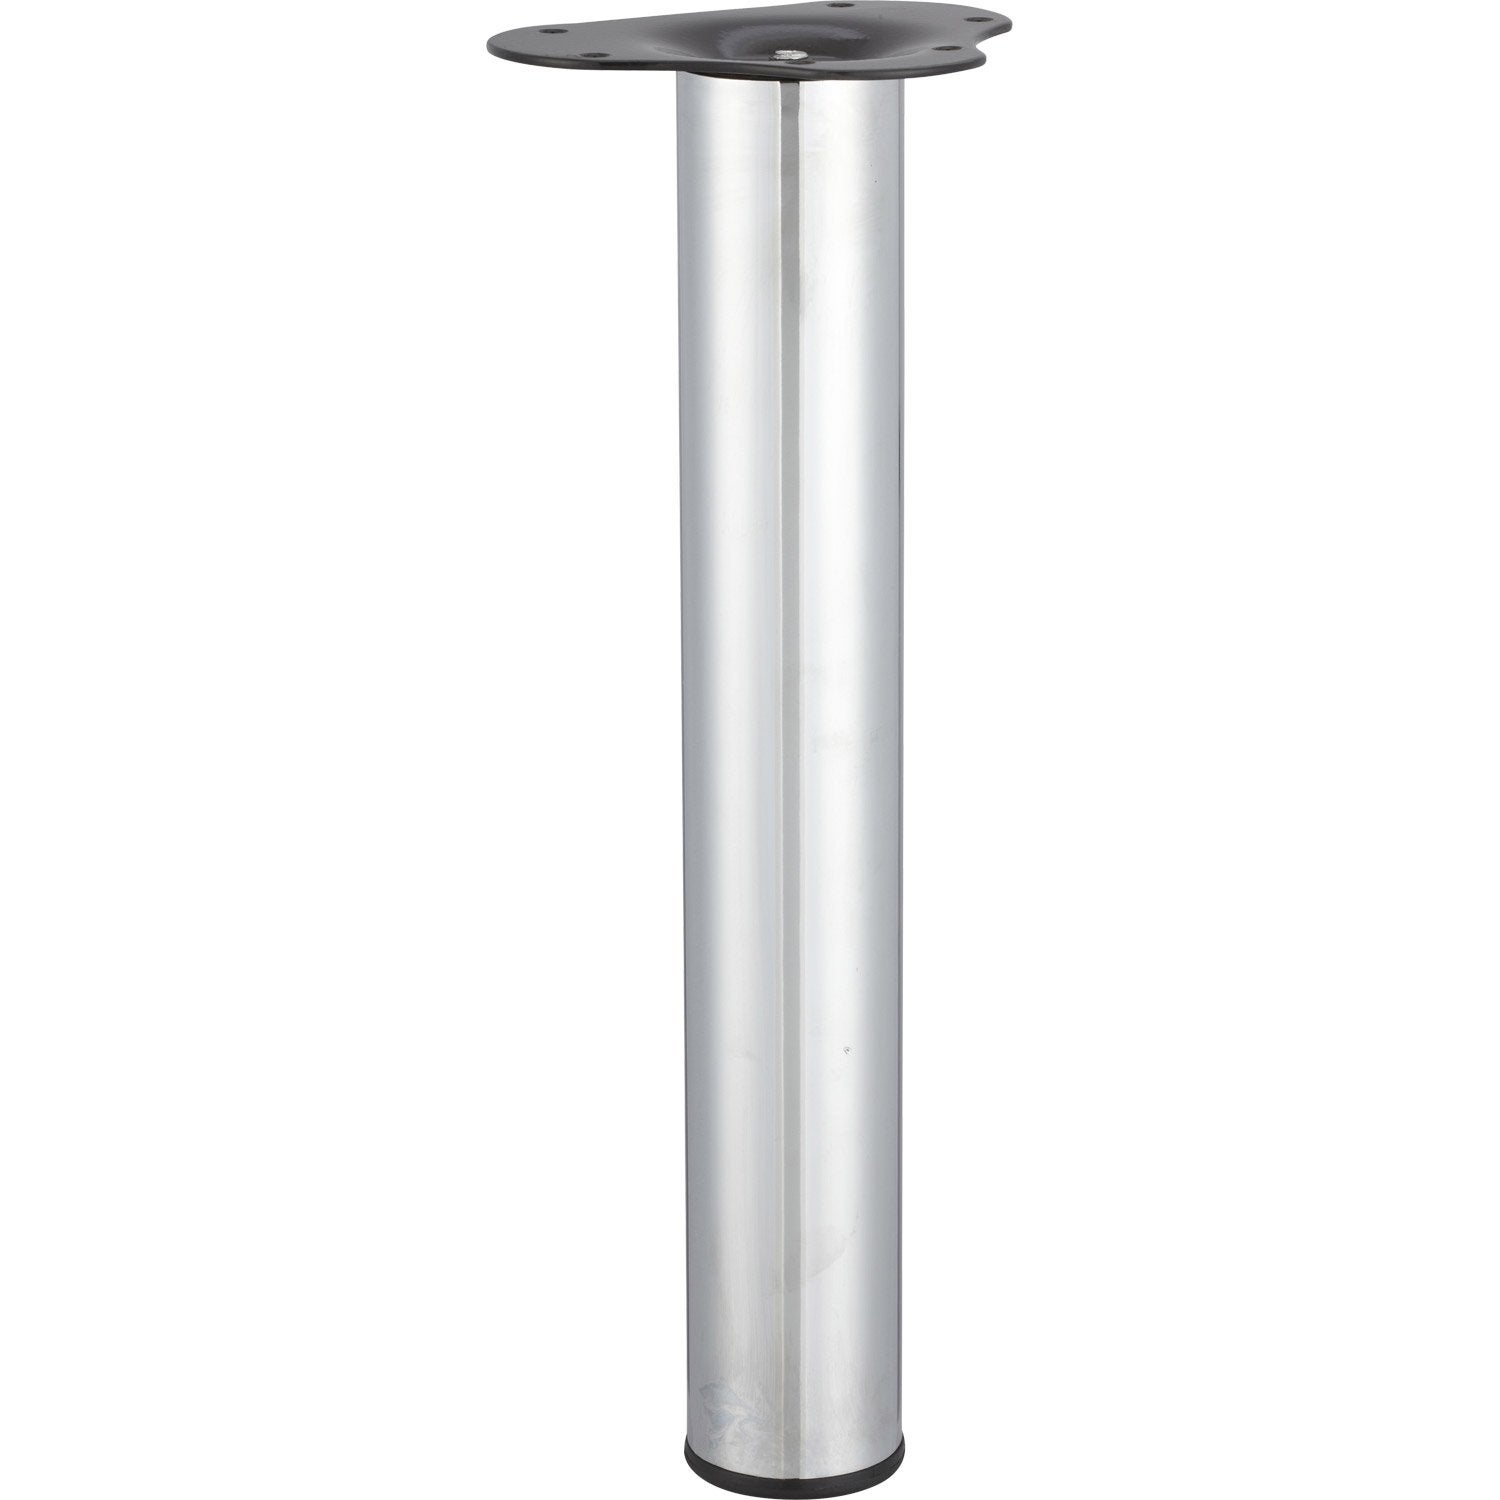 Pied de table basse cylindrique r glable acier chrom gris for Table basse 3 pieds